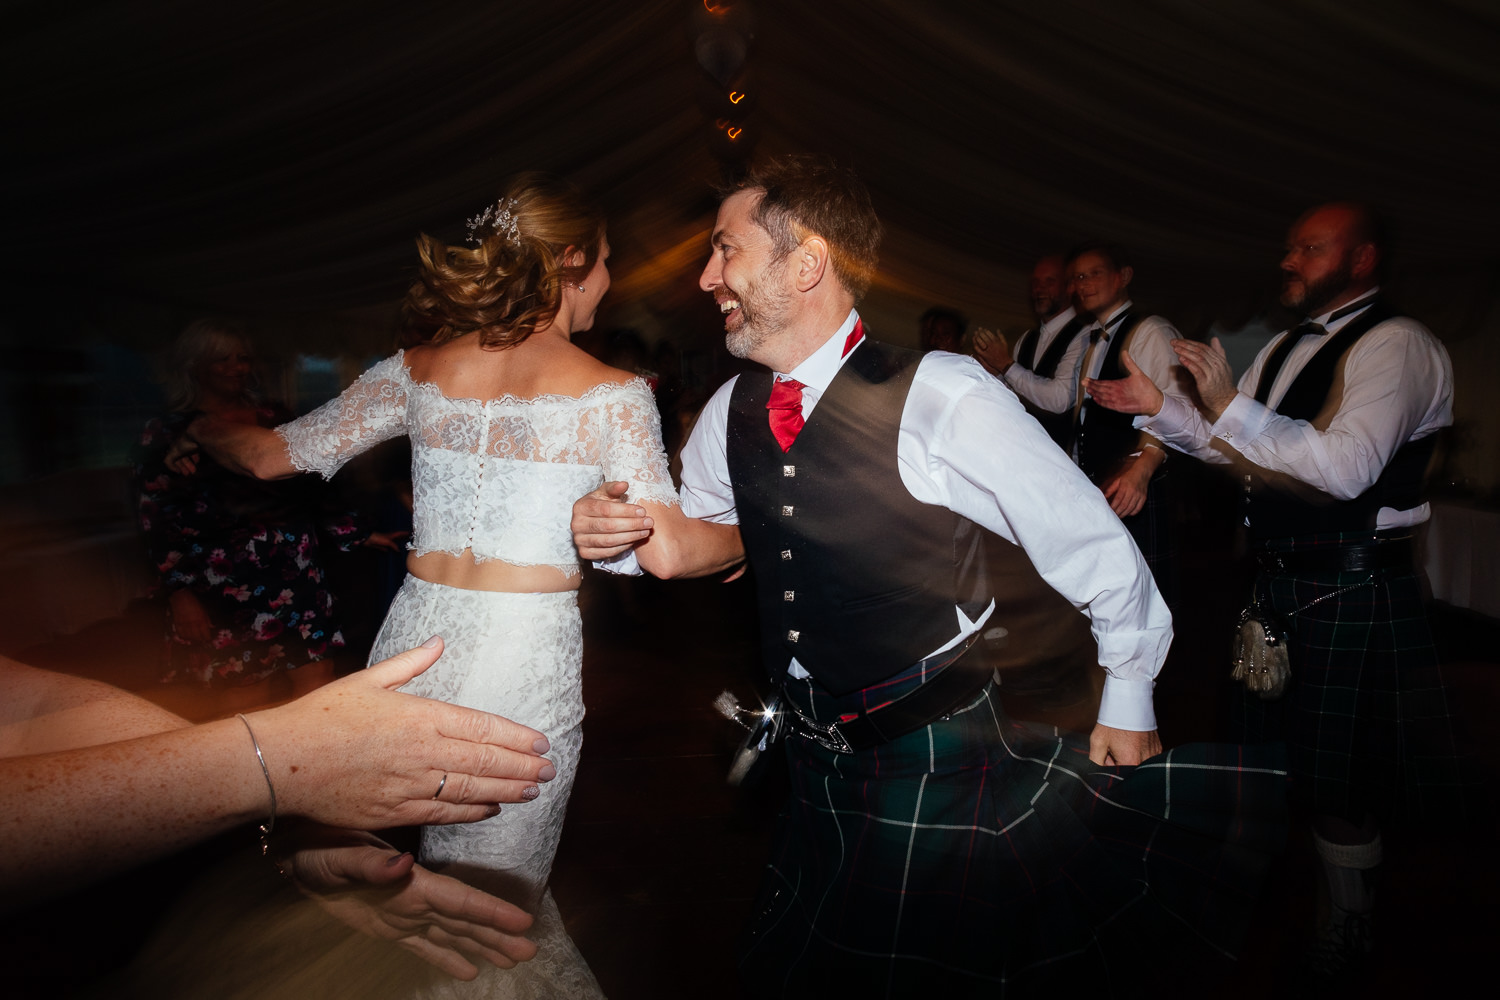 aberdeenshire farm wedding ceilidh dancing evening reception